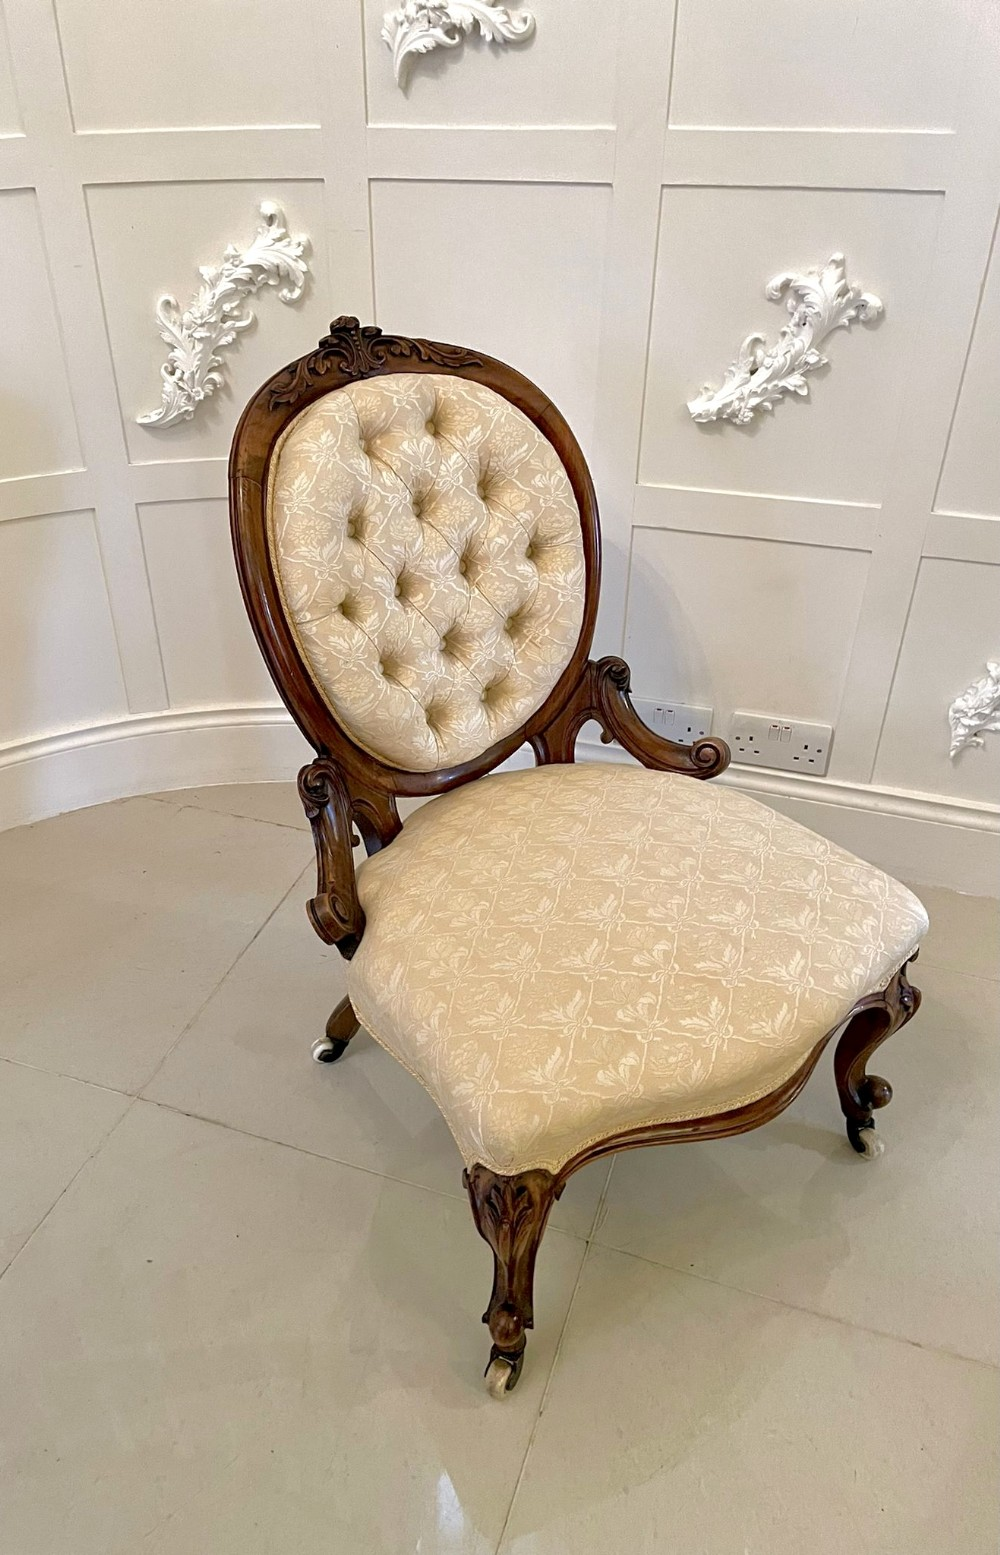 superb quality antique victorian carved walnut ladies chair